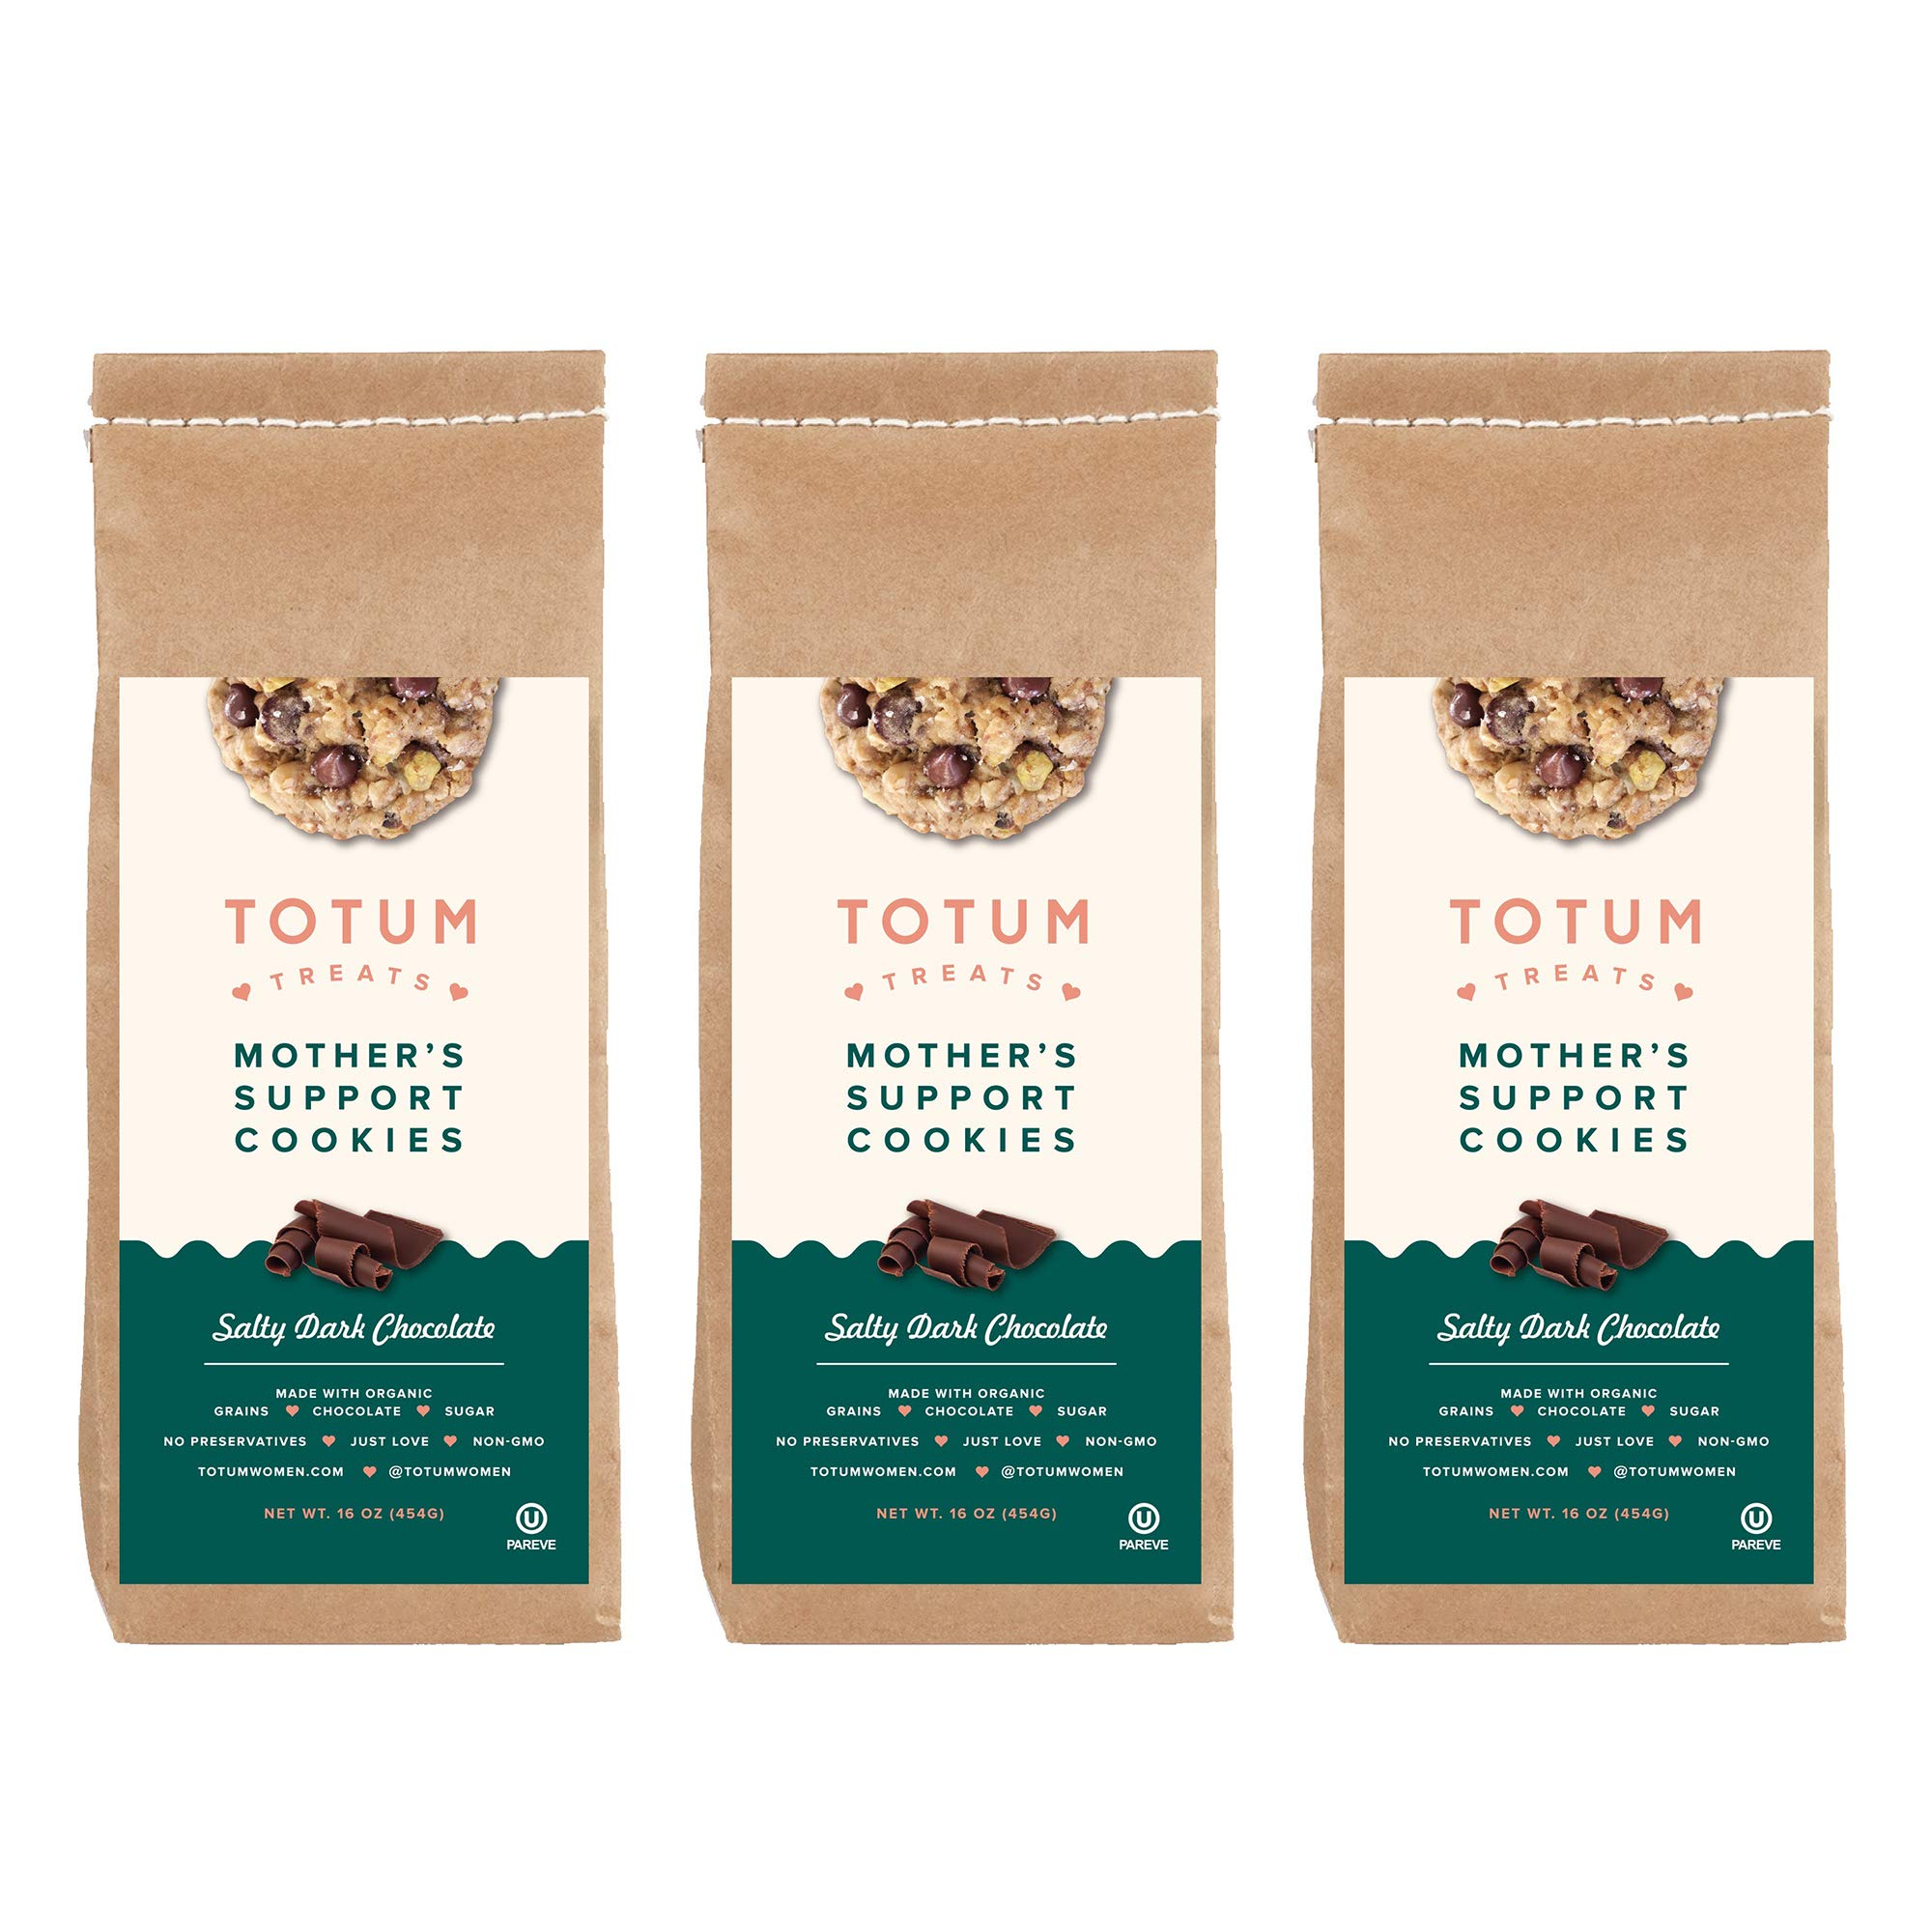 Totum Treats Lactation Cookie Mix for Relactation and Increase Breastmilk Supply - Organic Mother's Support Cookies for Breastfeeding, Nursing - Salty Dark Chocolate, 10 oz. Bag (3 Pack)